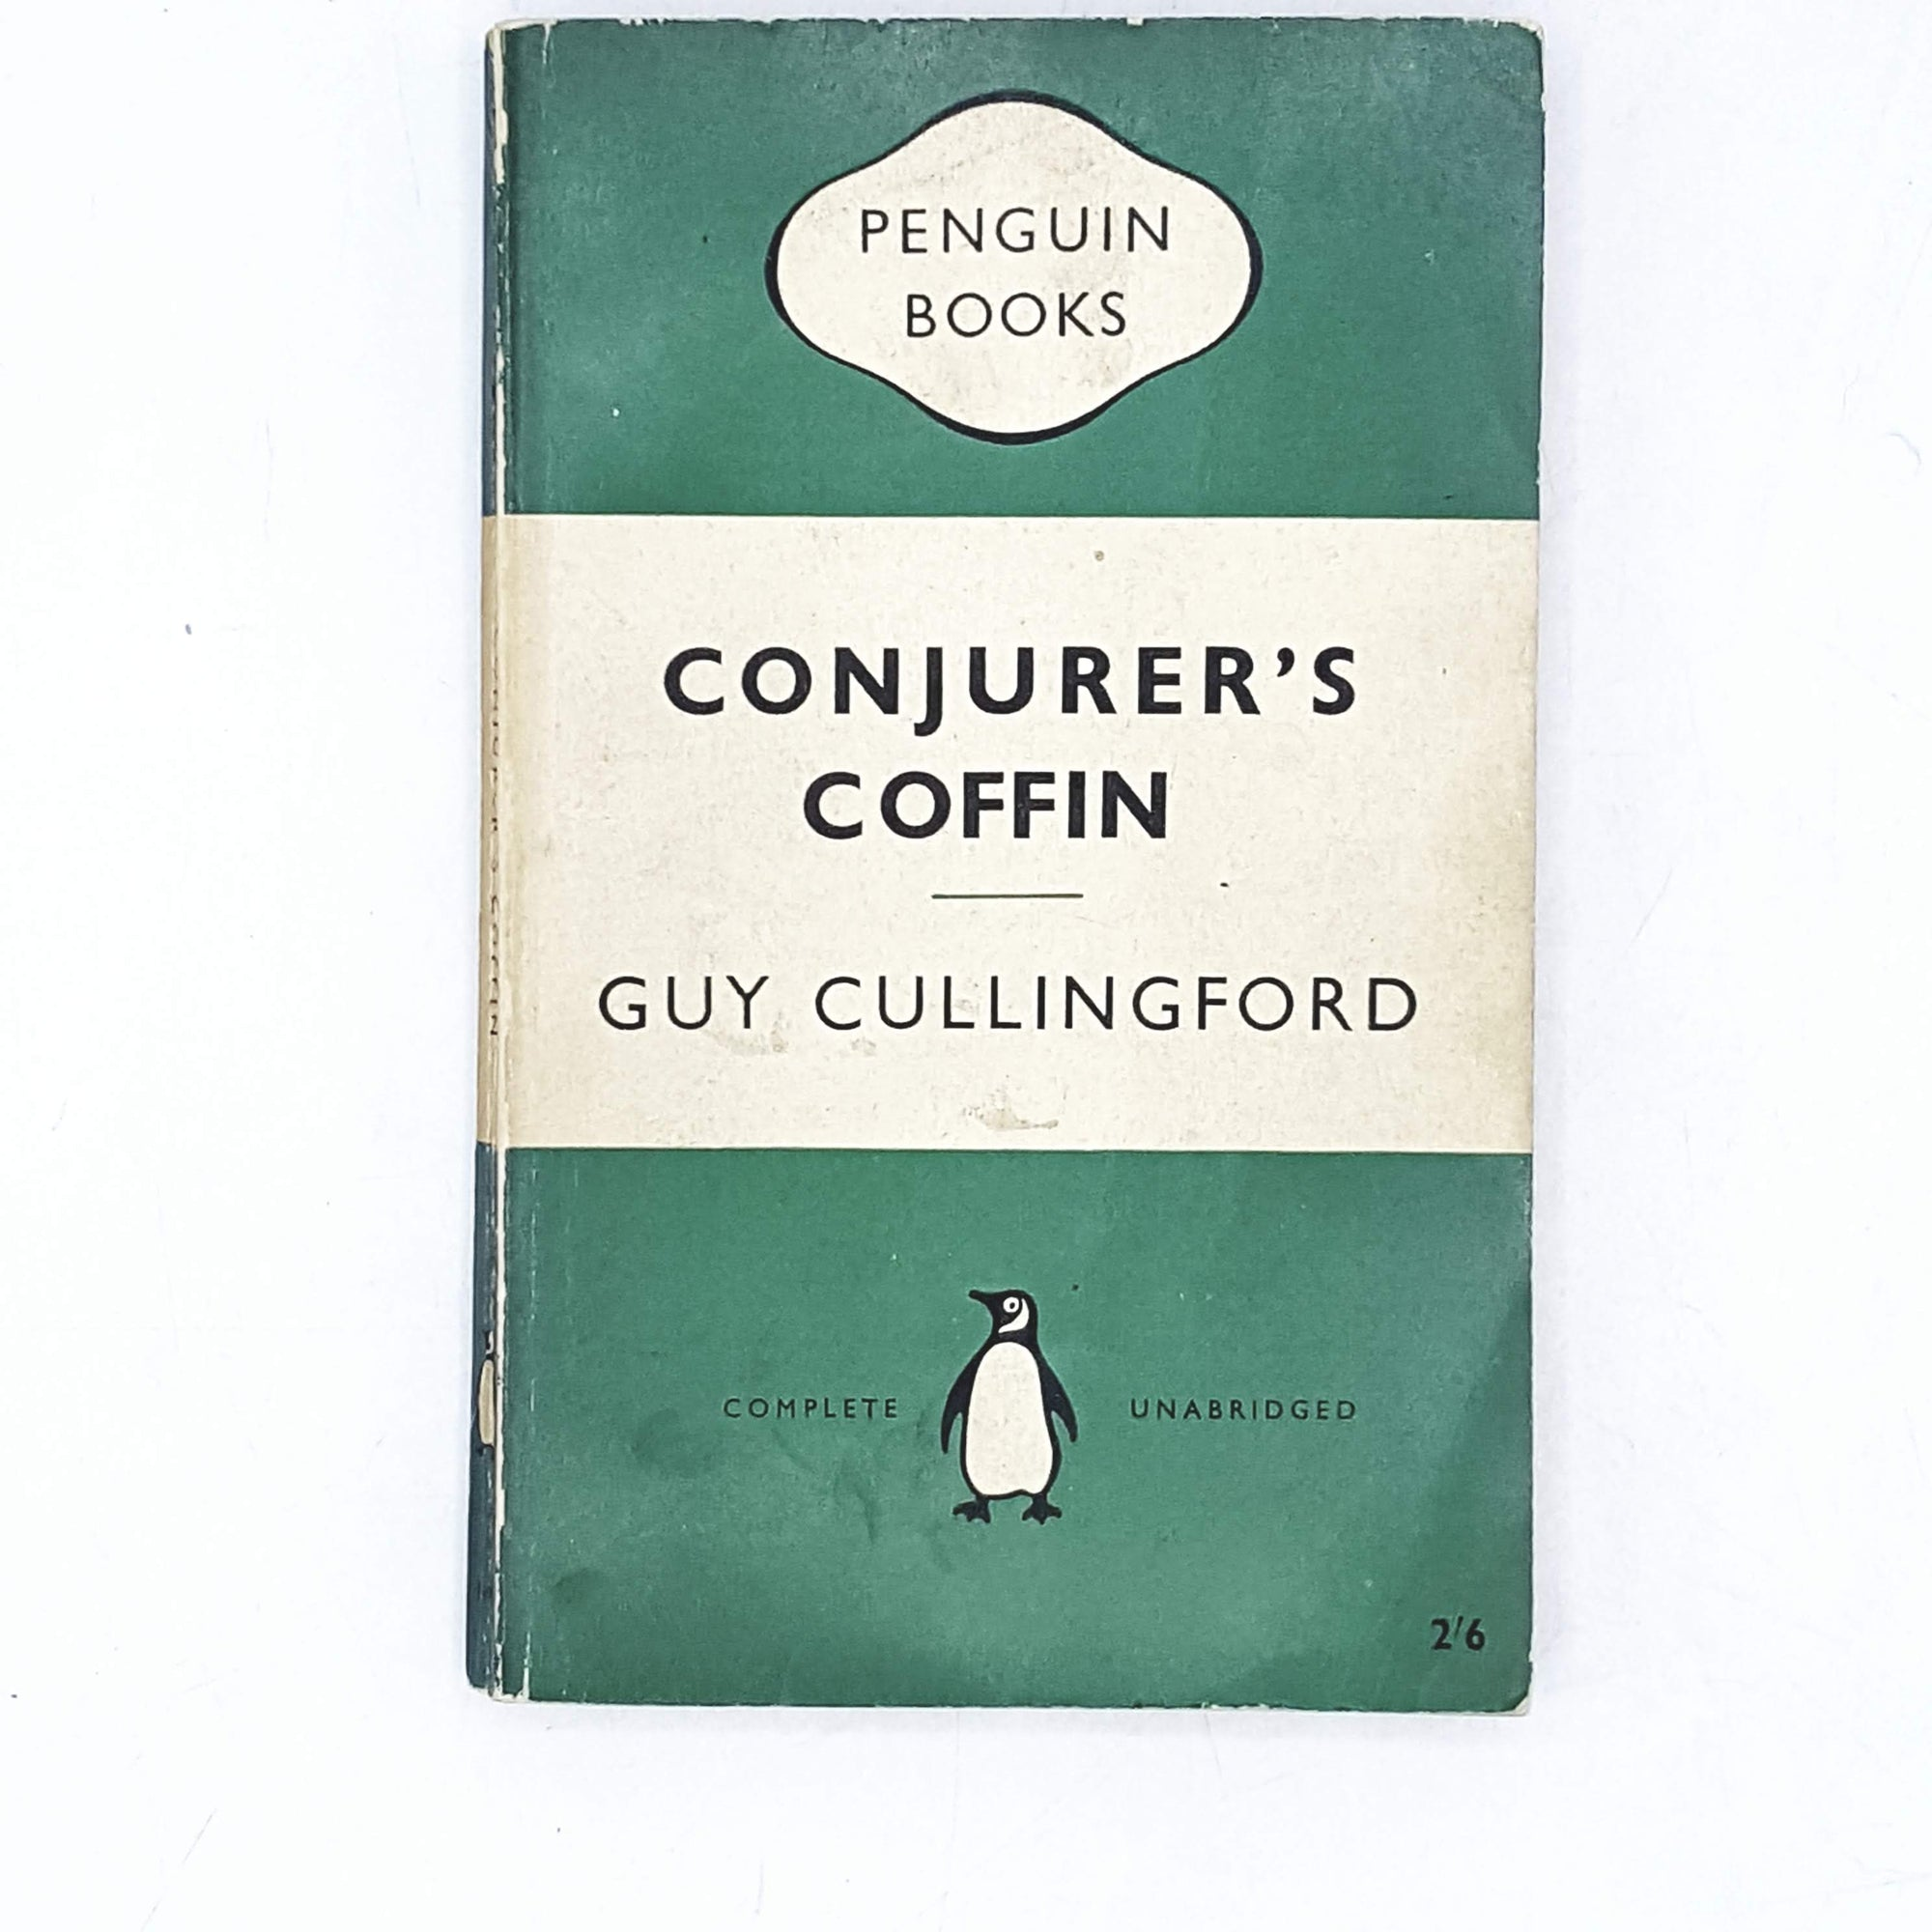 Vintage Penguin Conjurer's Coffin by Guy Cullinford 1957